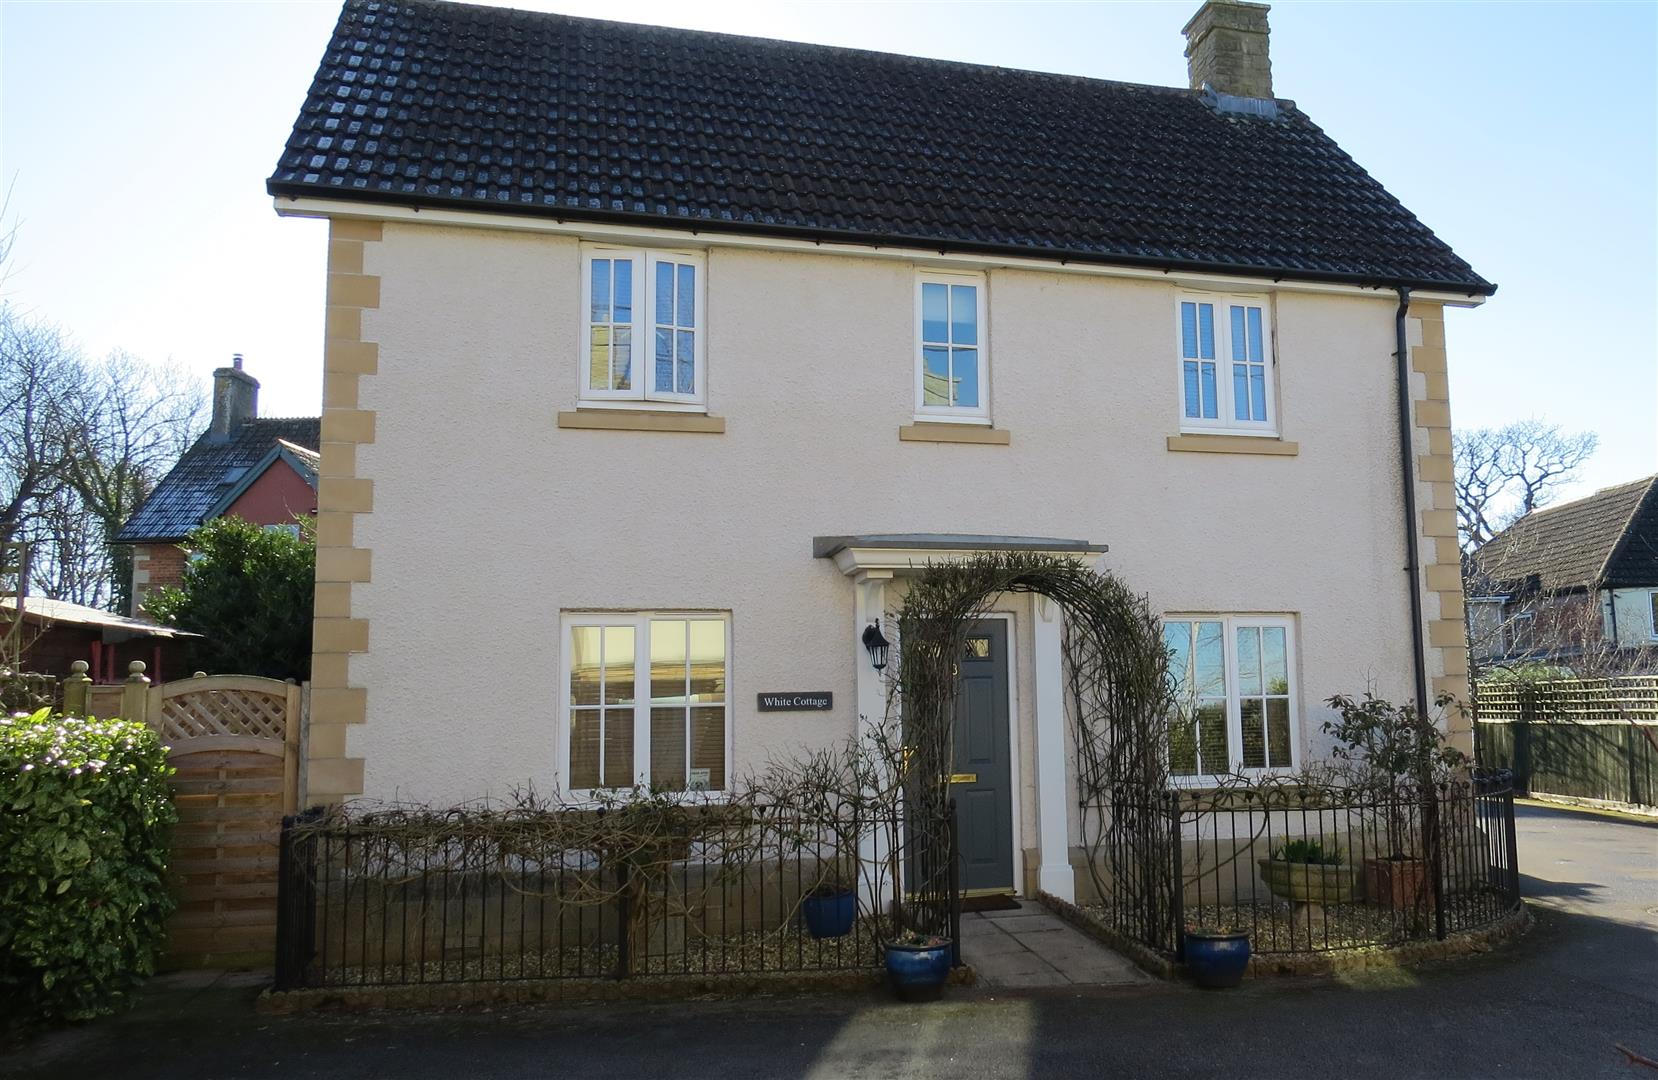 3 Bedrooms House for sale in Eadreds hyde, Quemerford, Calne